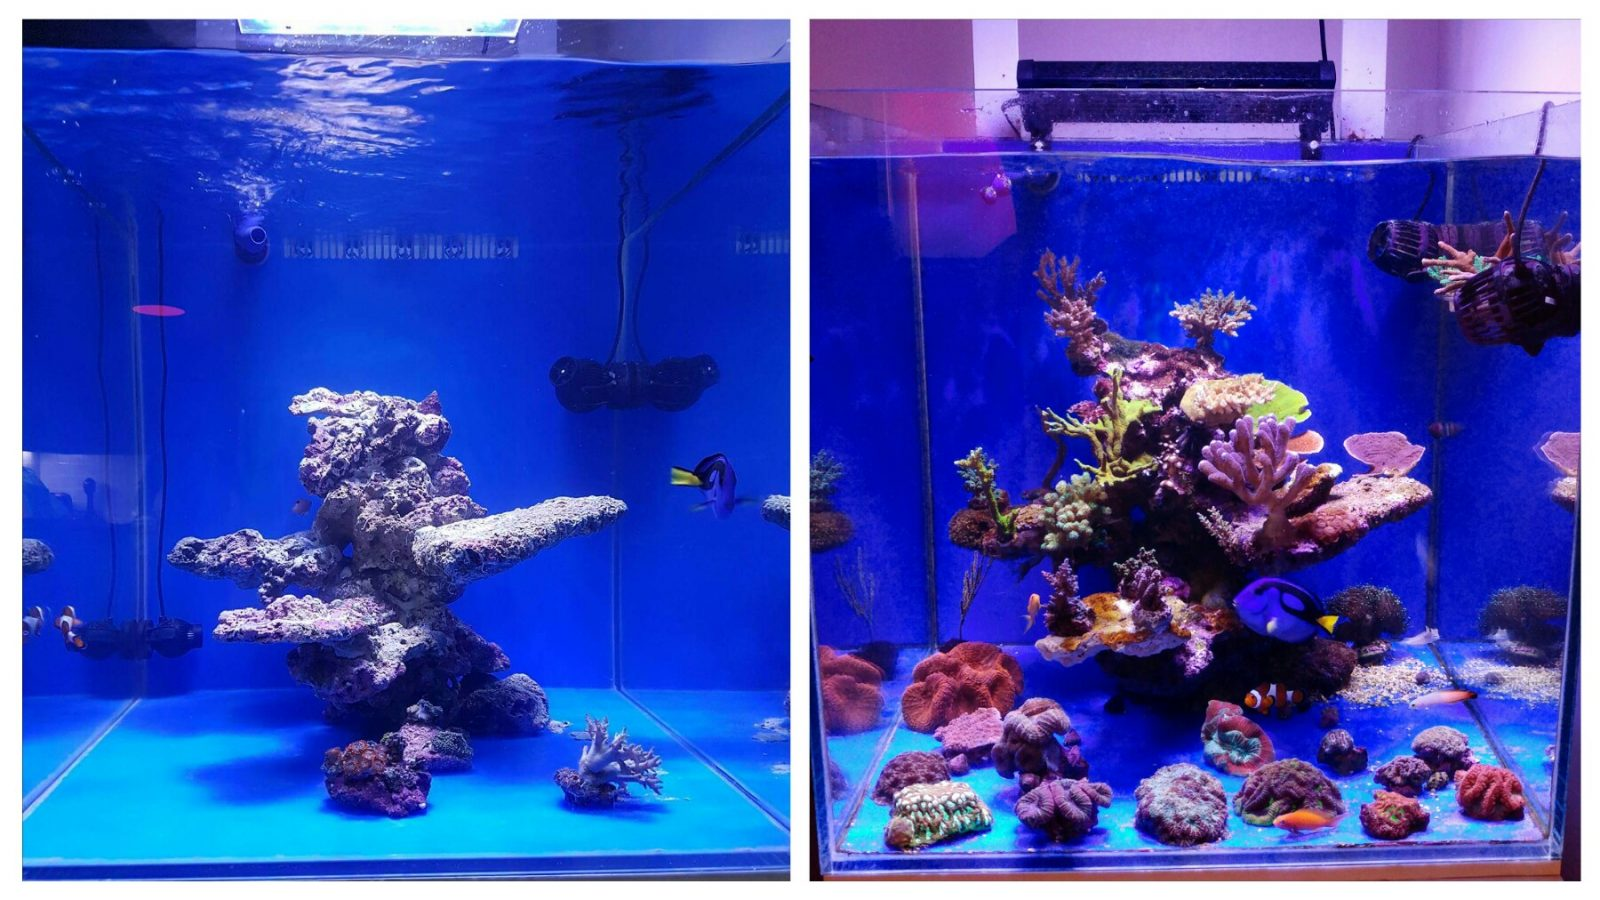 Aquarium-Reef-Before-After-Orphek-LED